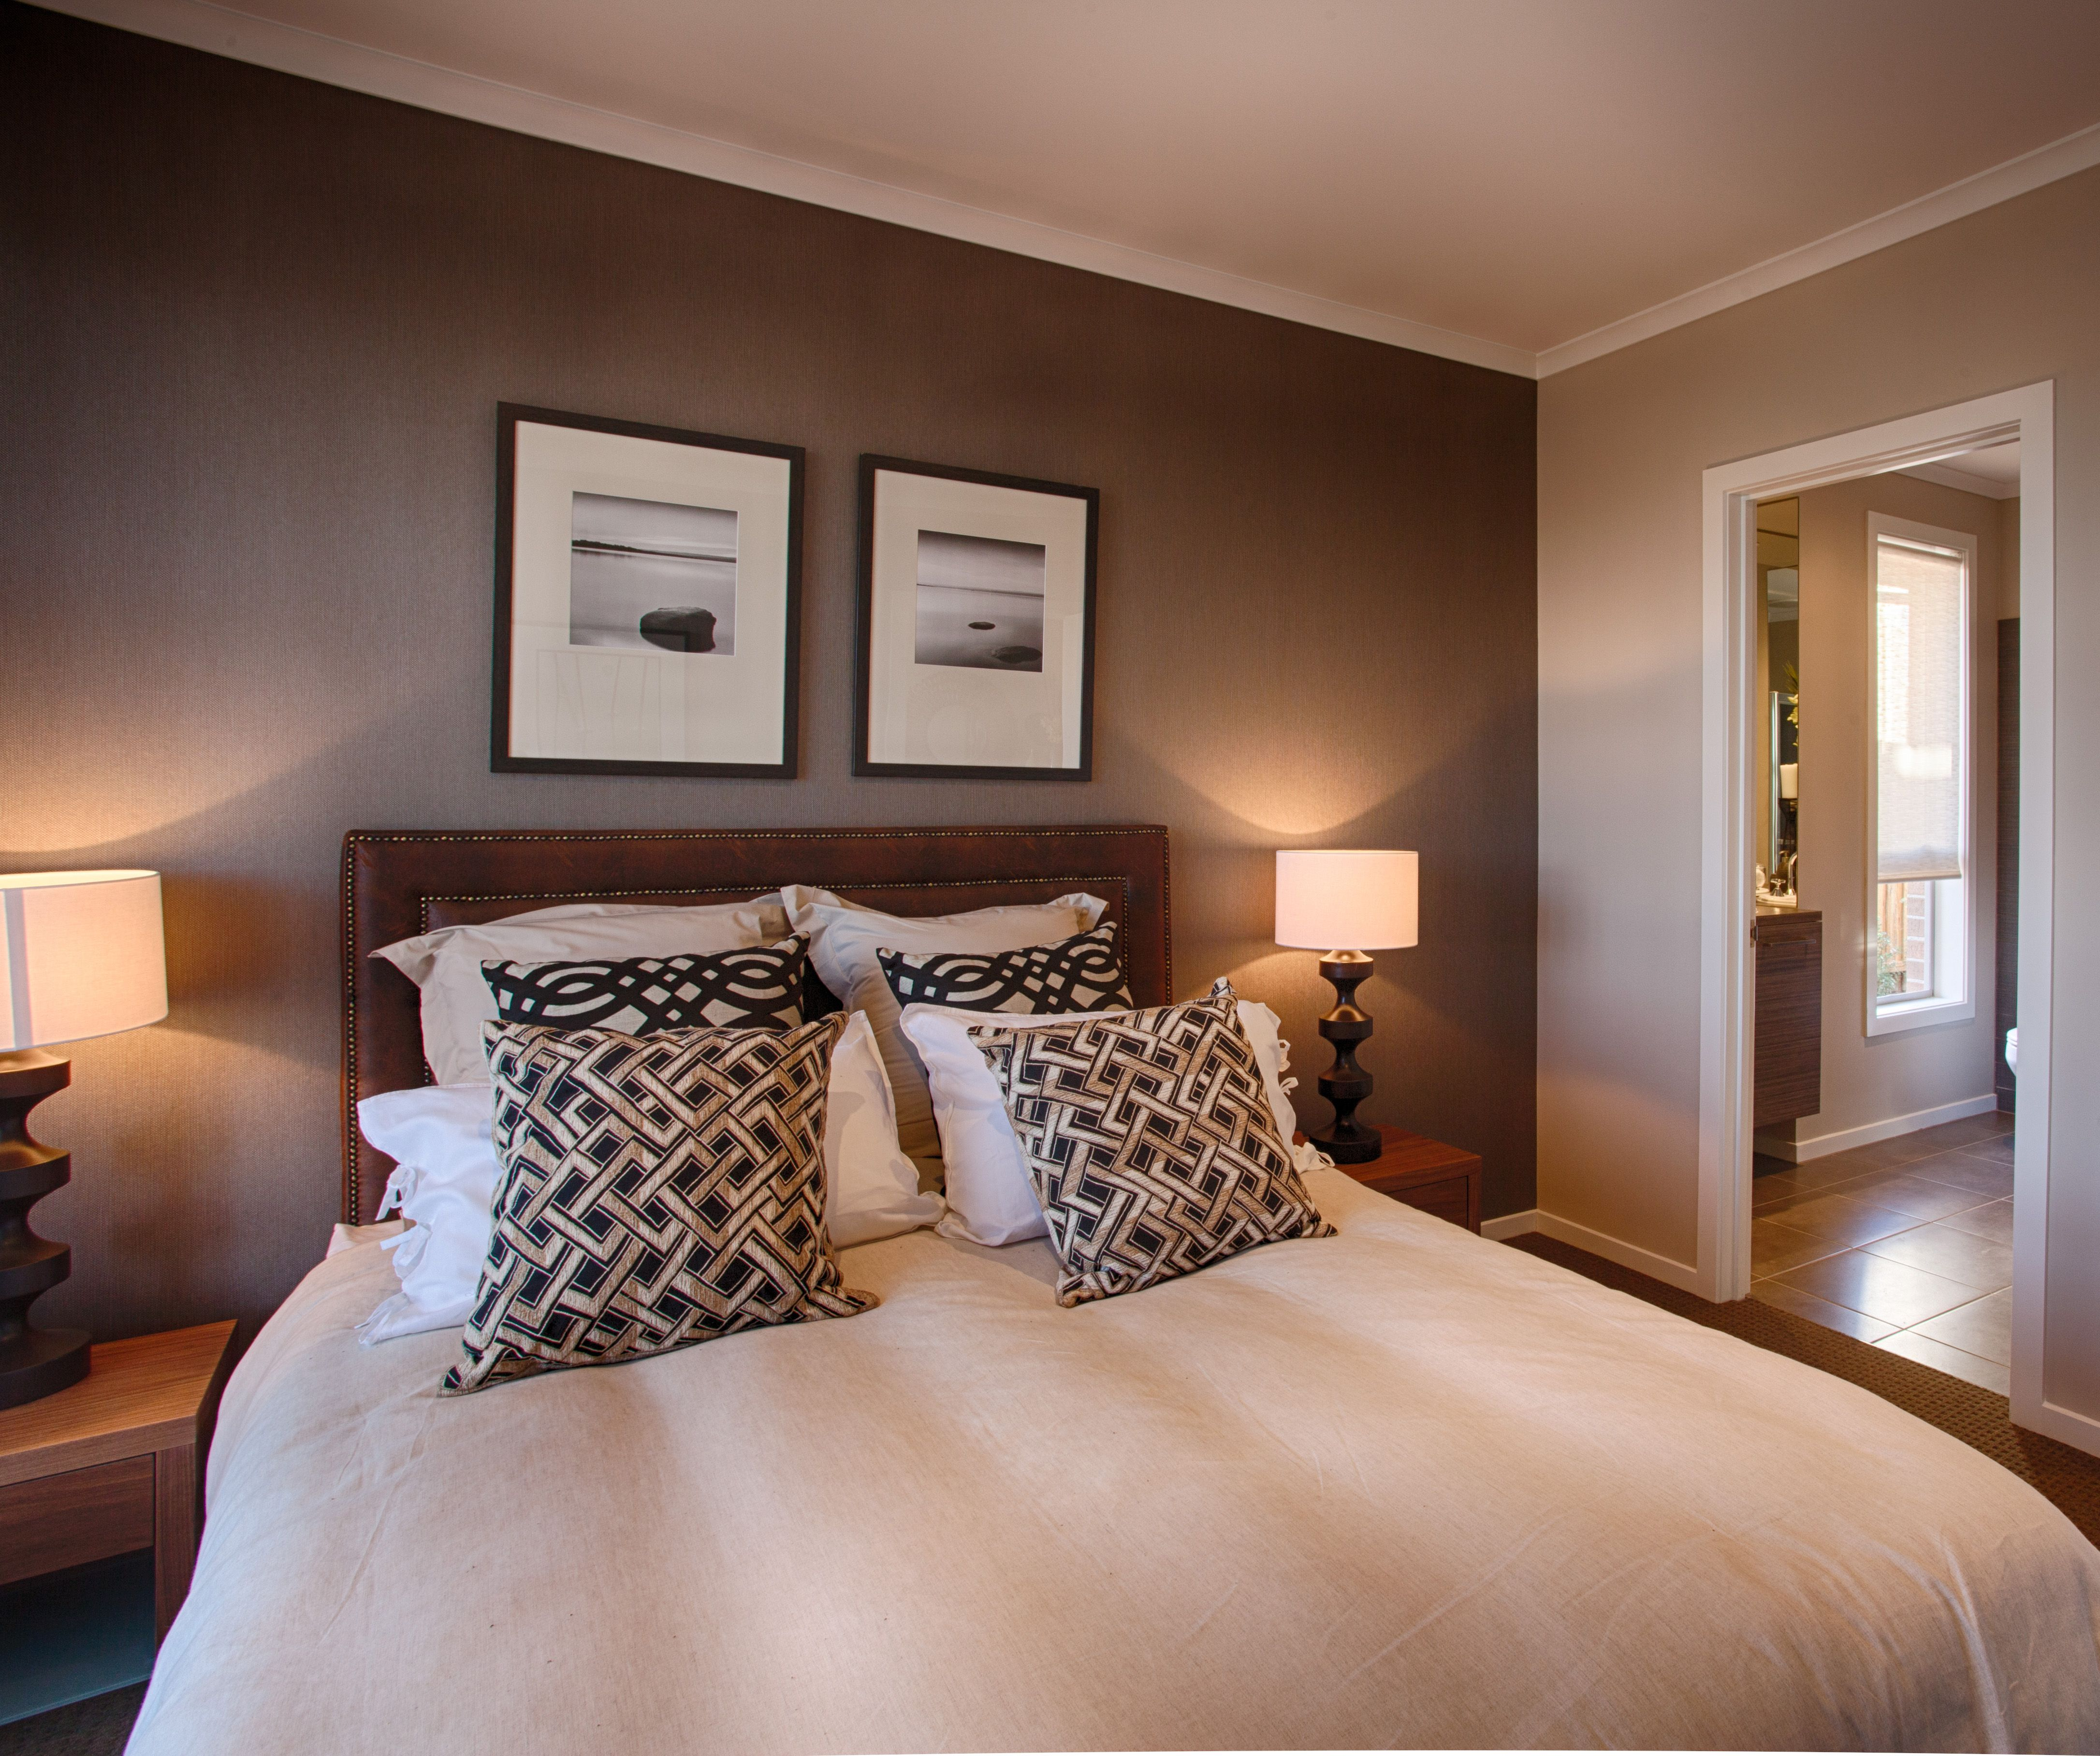 Beautiful feature wall colour in this master bedroom. I